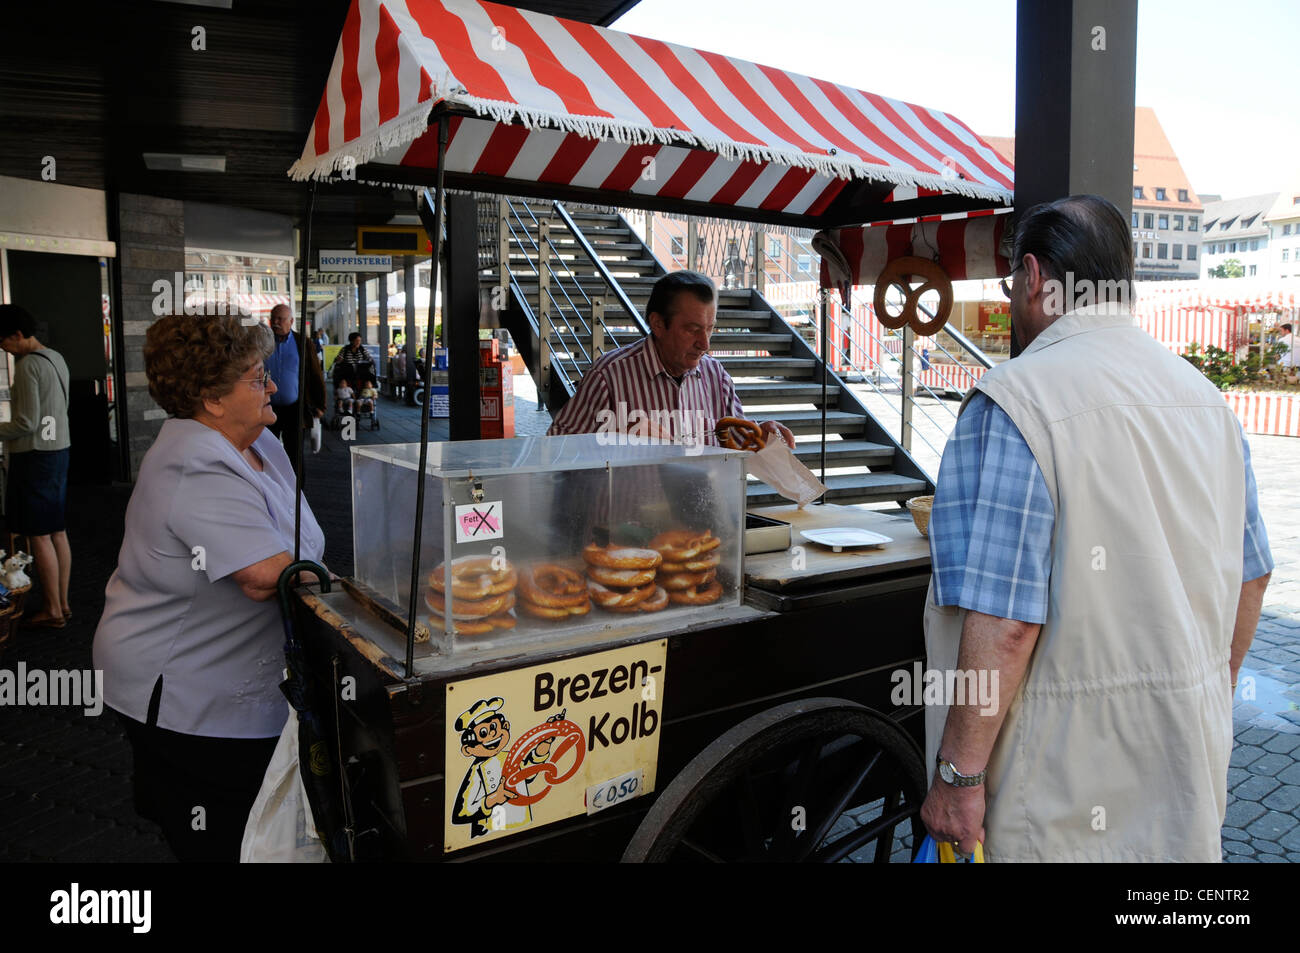 A stall holder packing a Brezen for a customer in Nuremberg, Germany - Stock Image